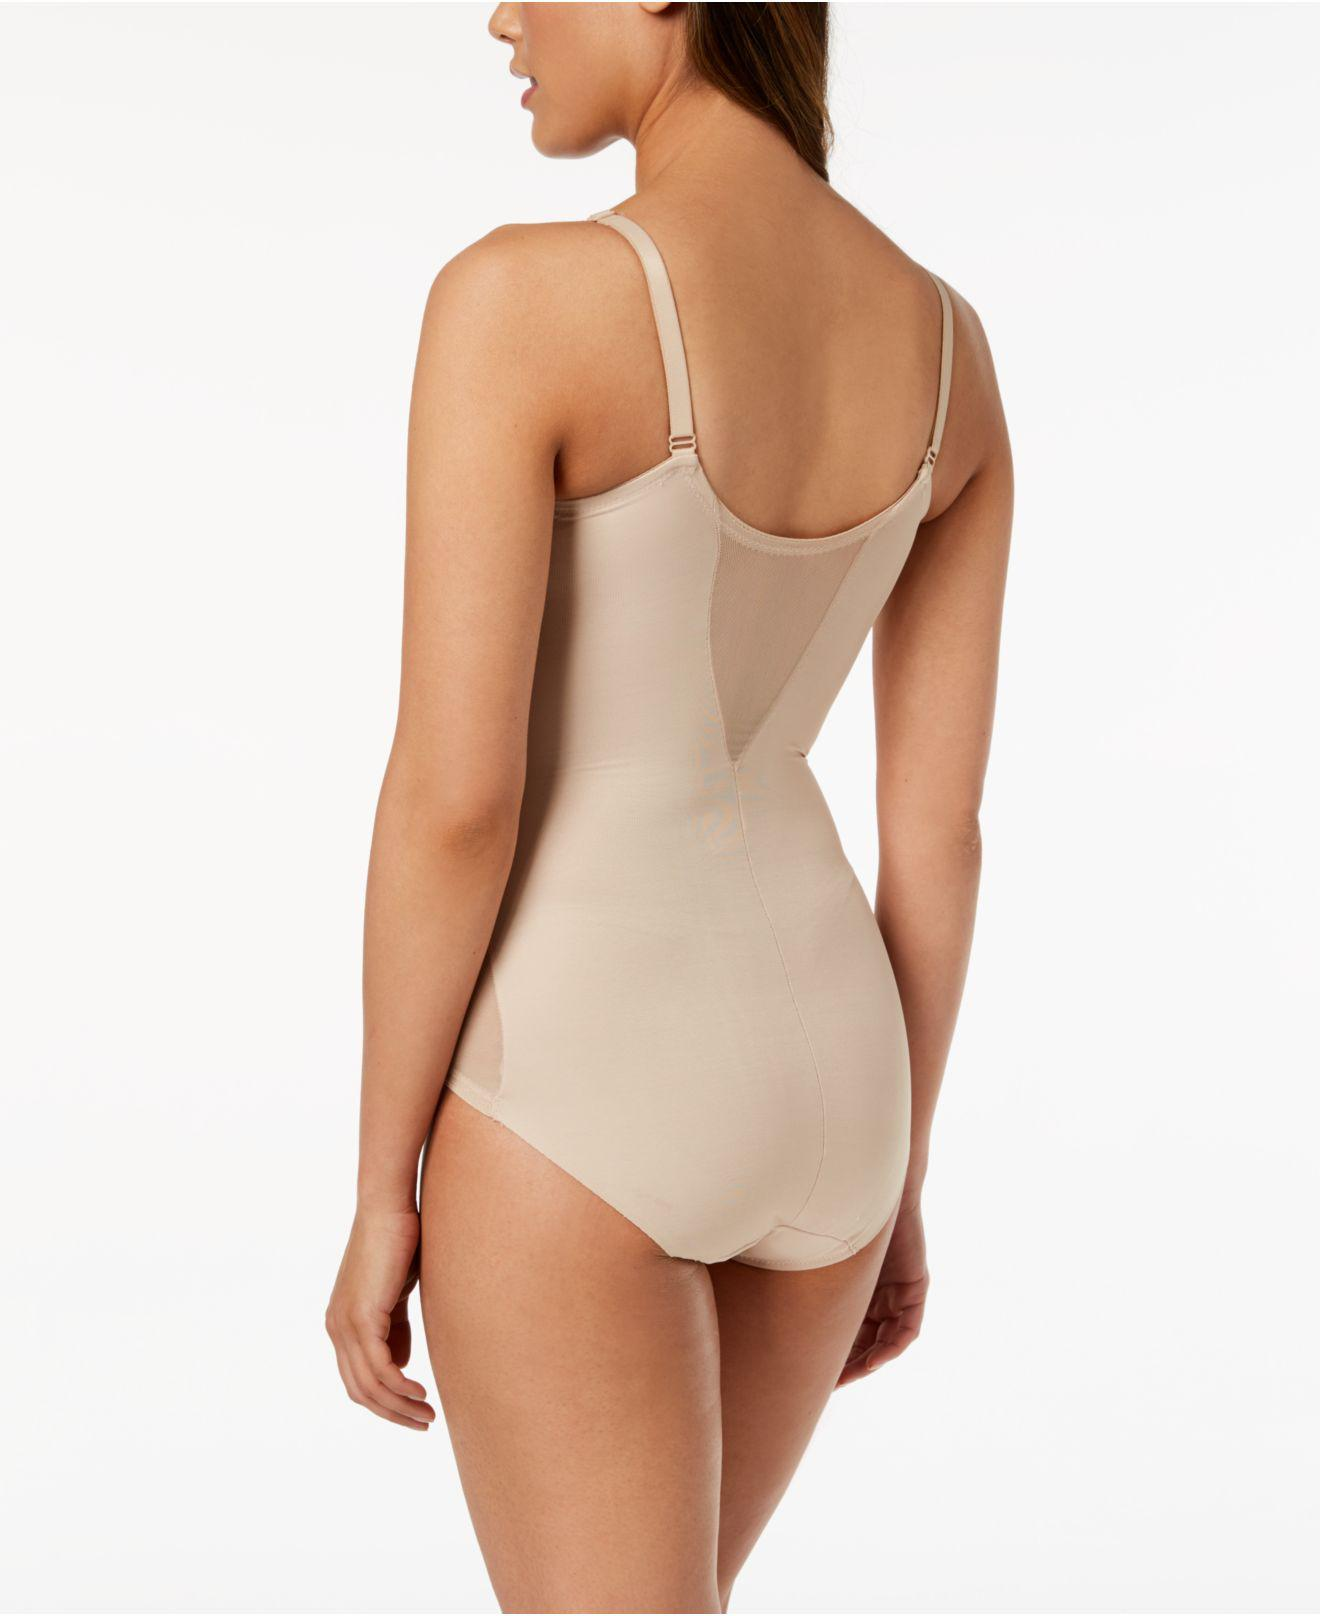 d96afd3c0d Lyst - Miraclesuit Extra Firm Control Sheer Trim Body Shaper 2783 in Natural  - Save 7%